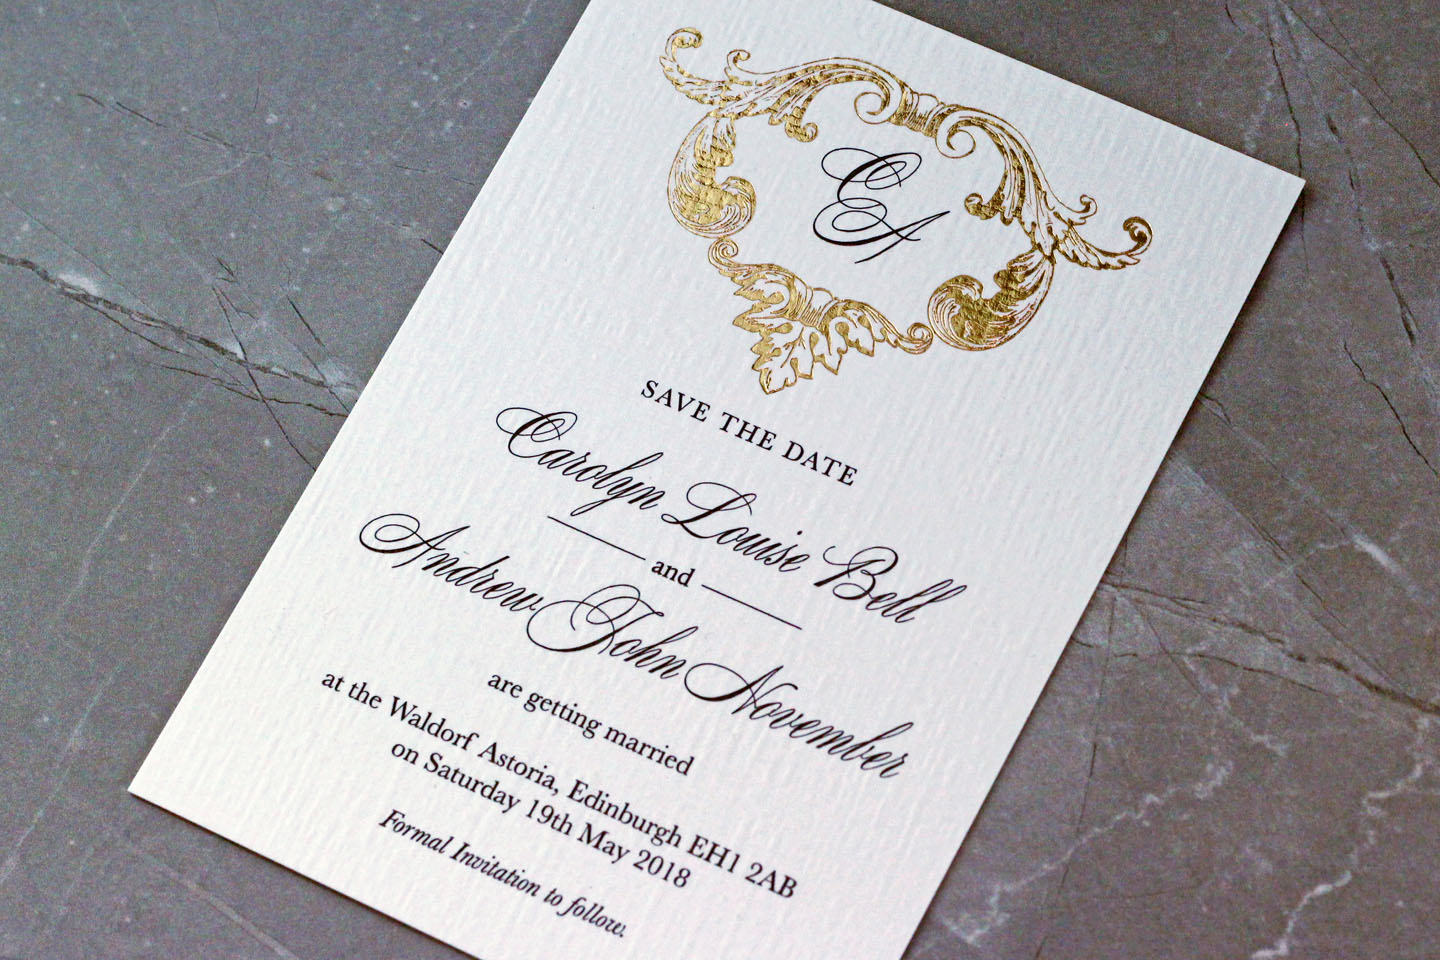 Elegant Wedding Save the Dates - Beaumont | Edinburgh Wedding Inspiration from Carolyn and Andrew | The Foil Invite Company Blog